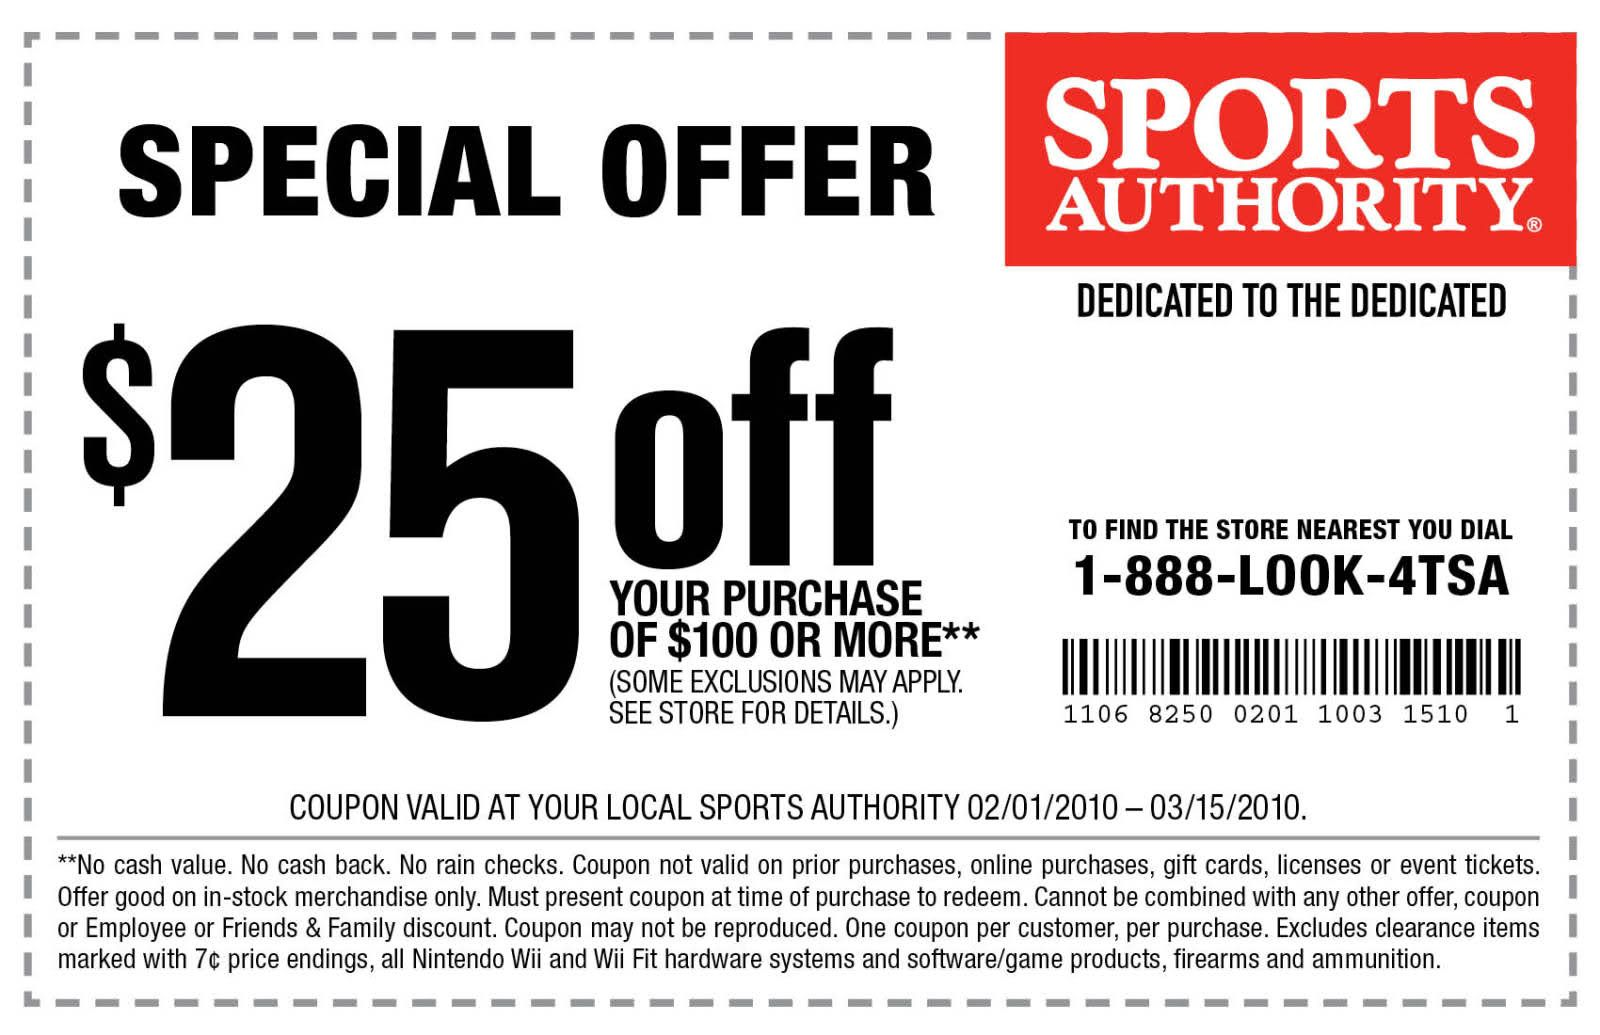 Defunct Online coupons codes, Sports authority